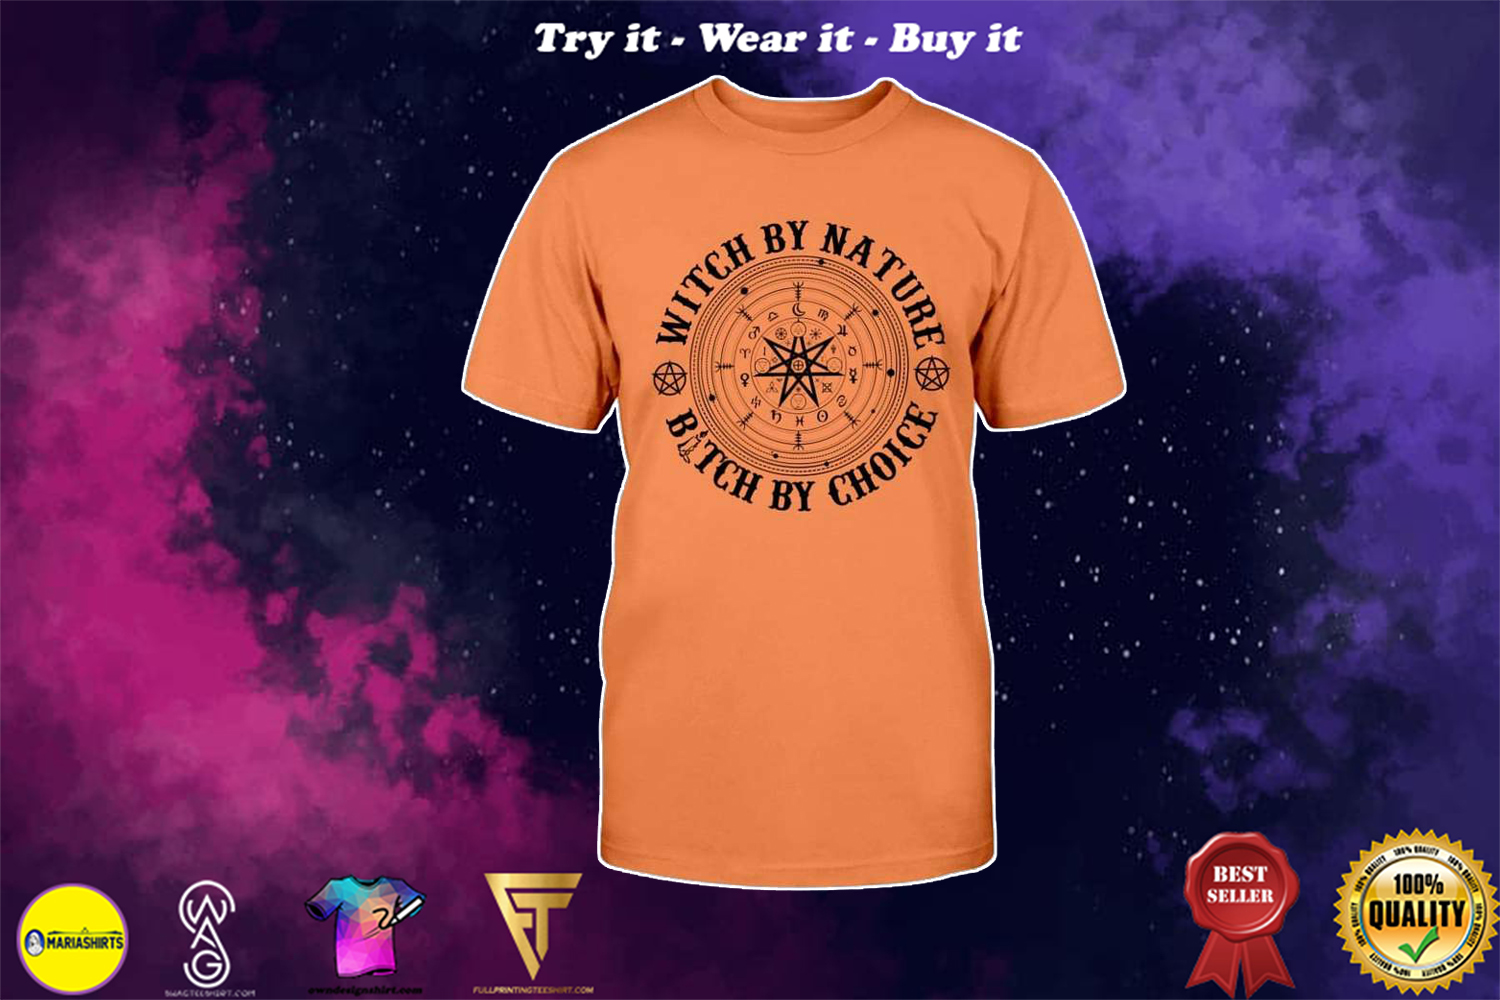 [special edition] halloween witch by nature bitch by choice shirt - Maria